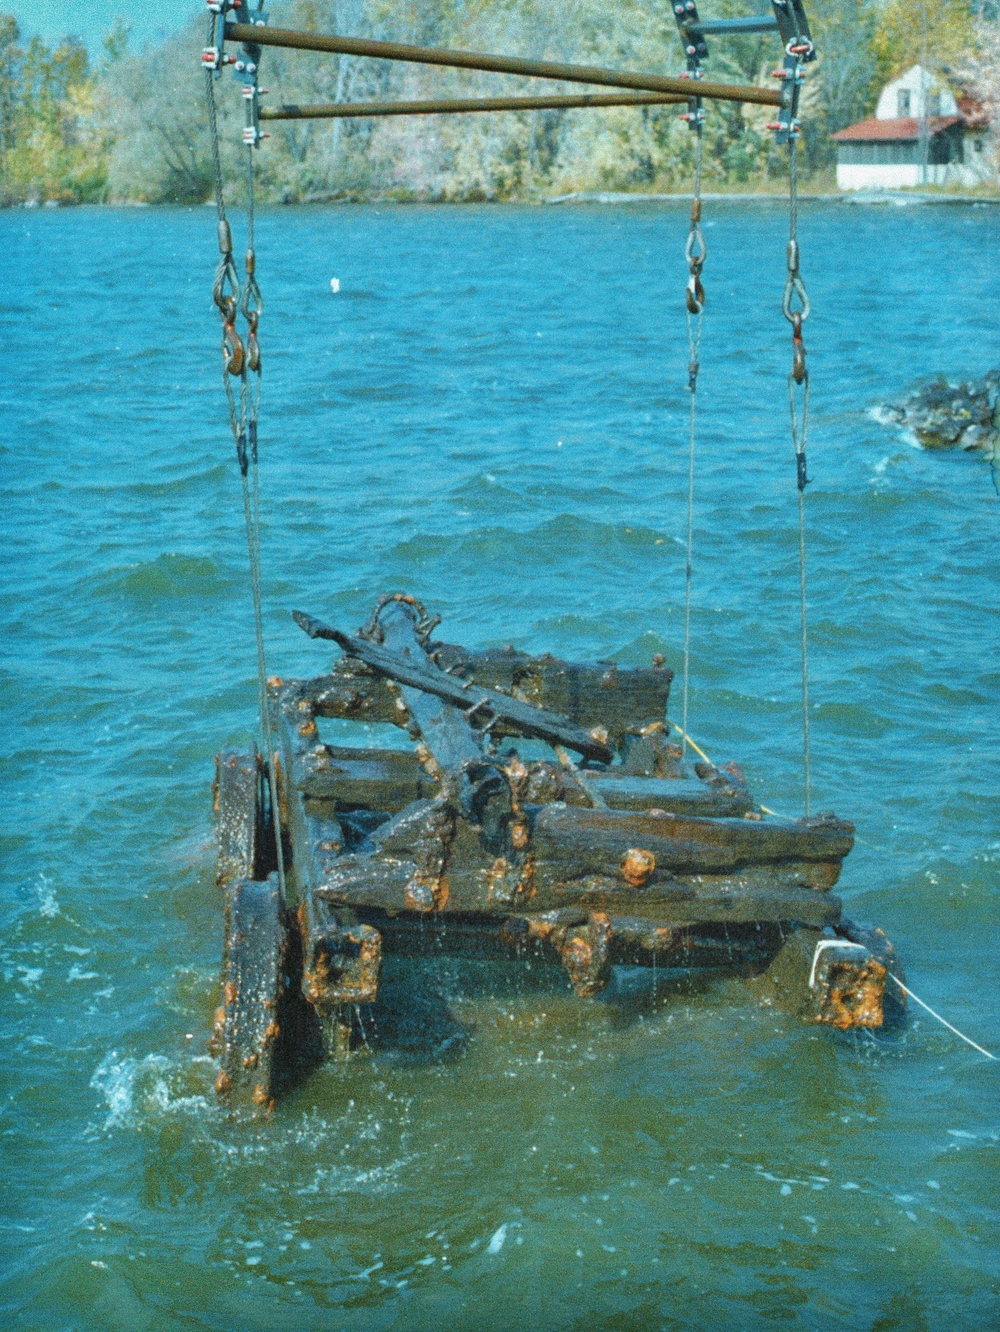 Ore Car raised from the Trent River by Parks Canada with the help of diver Brian McCrodan who hitched the chains underwater. (Photo by dick kane)